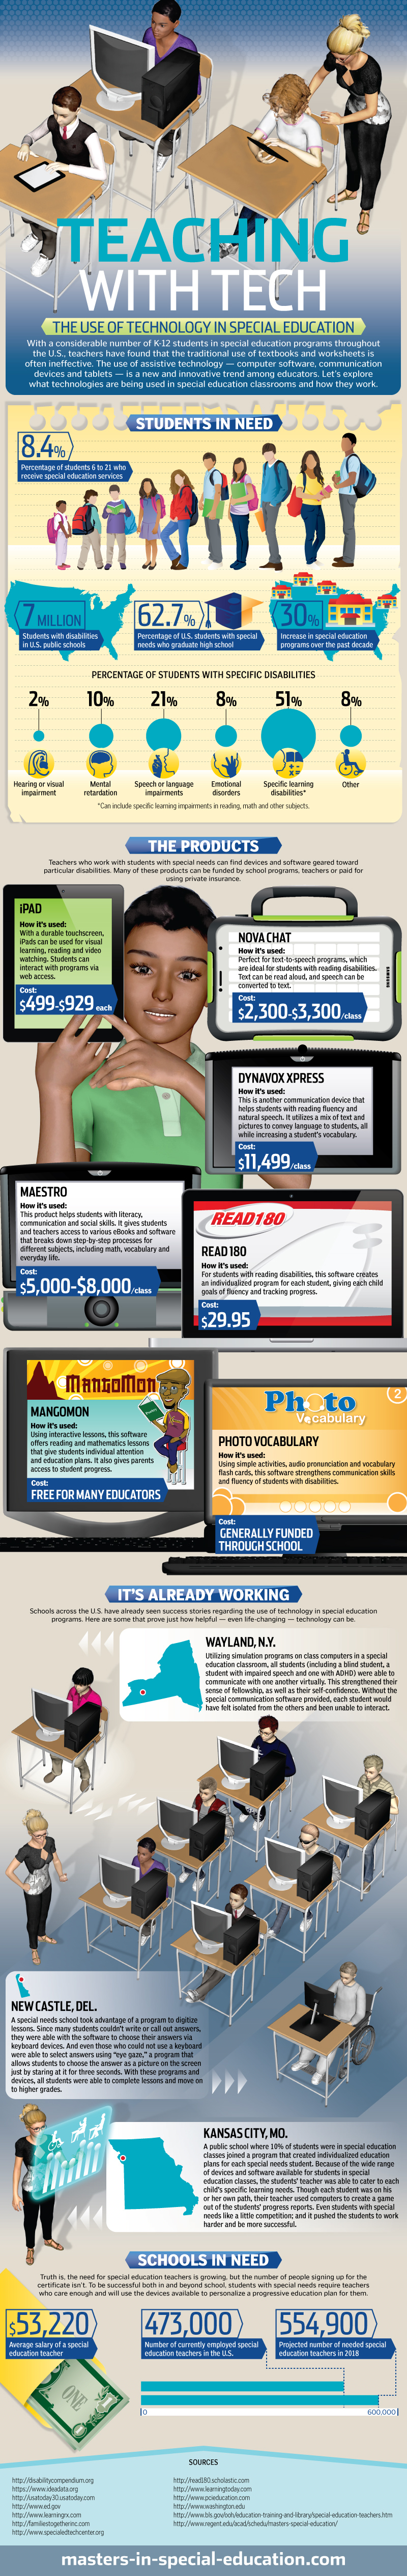 Infographic Trends In Special Education >> Teaching With Tech The Use Of Technology In Special Education